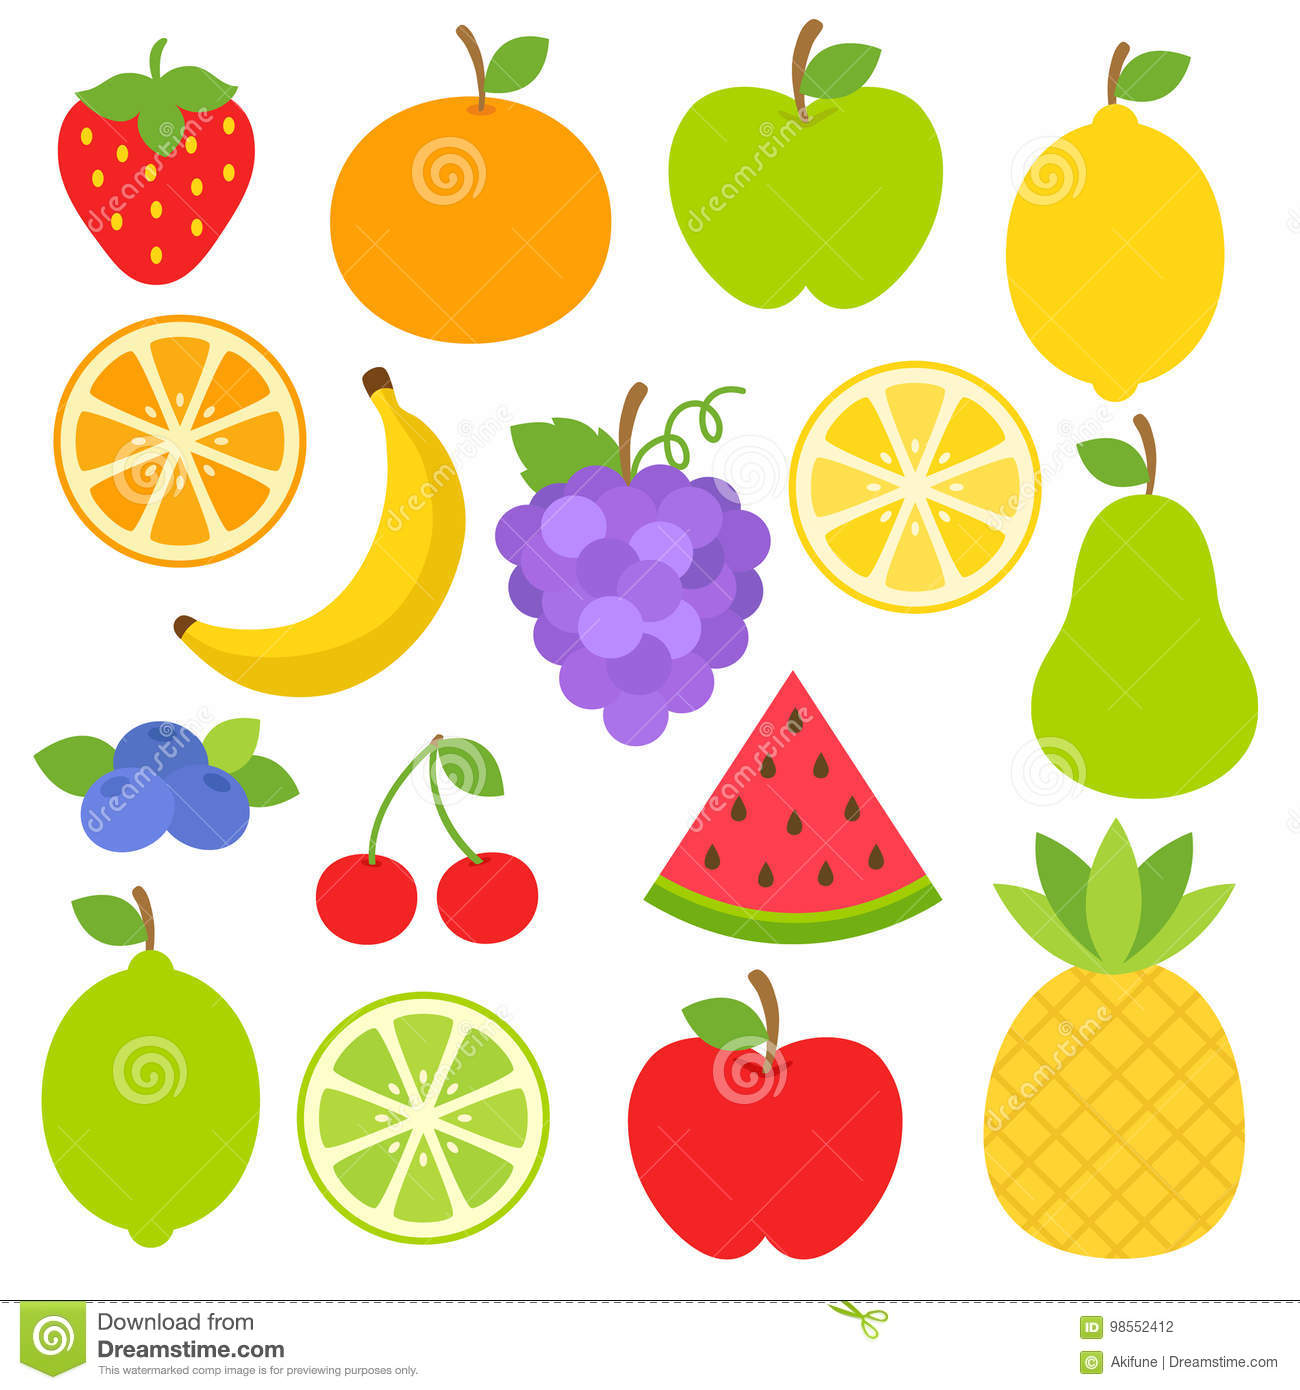 Fruits Clipart stock vector. Illustration of healthy.